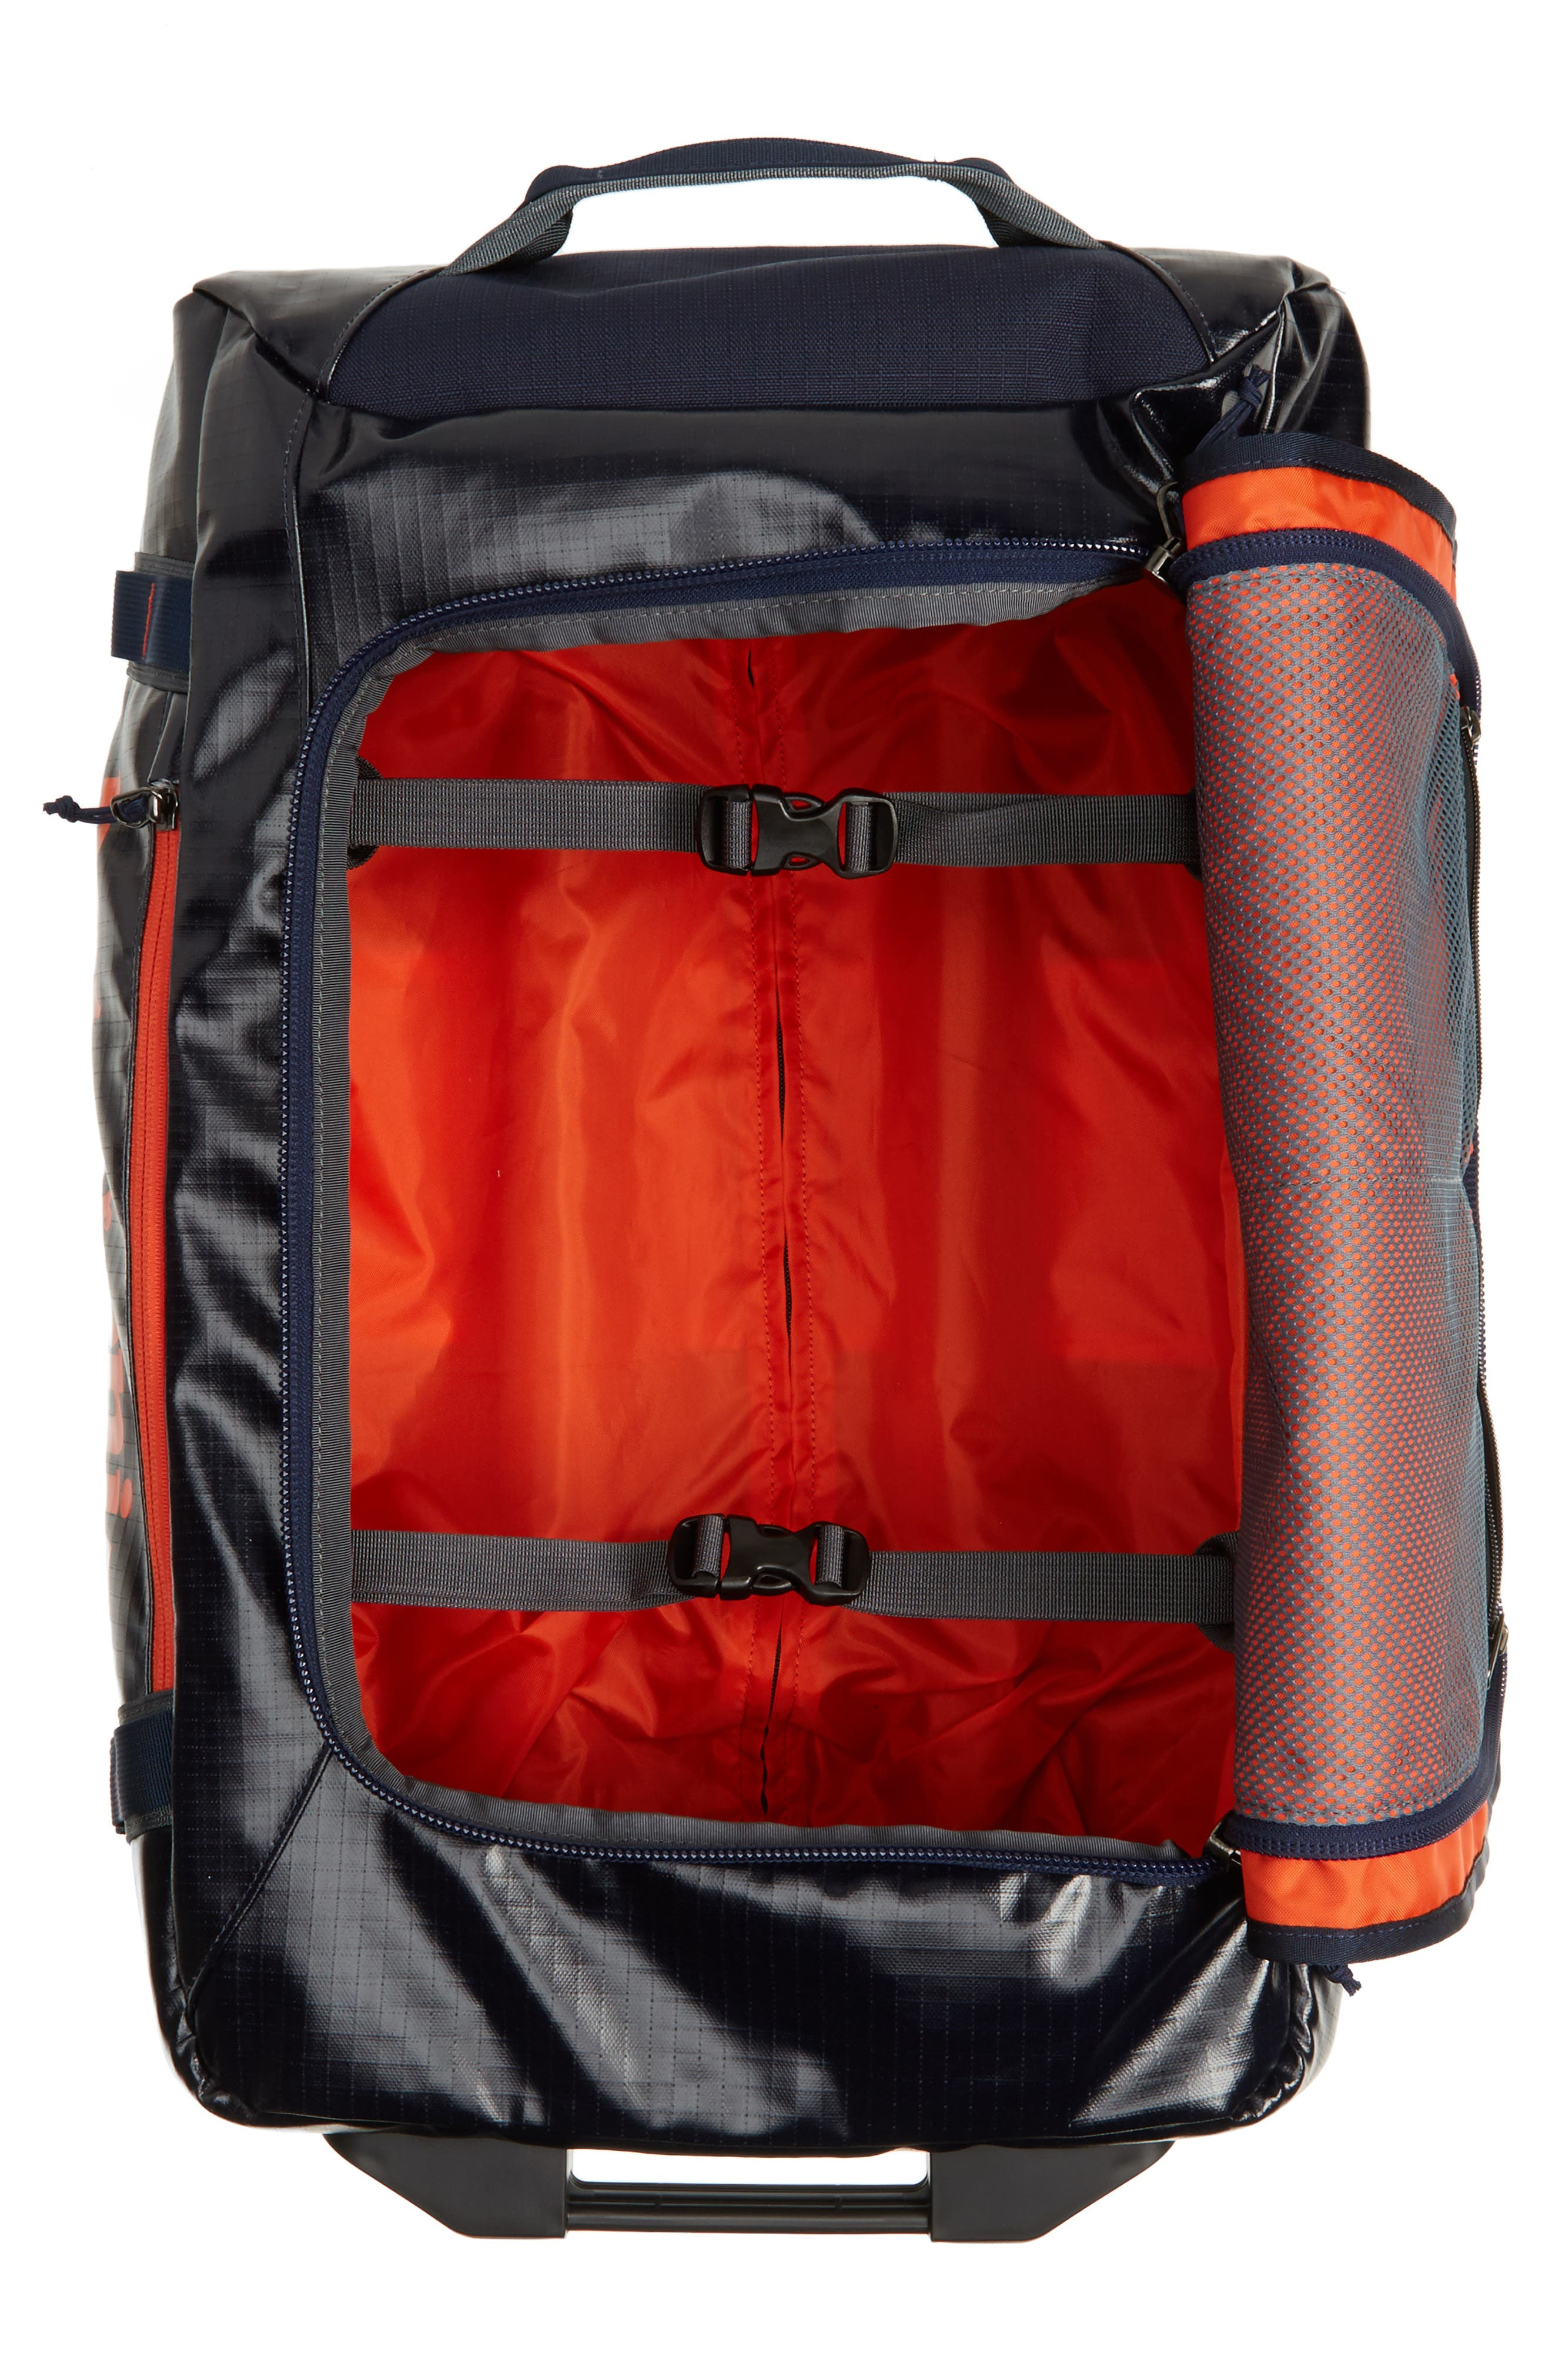 Black Hole 40-Liter Rolling Duffel Bag,                             Alternate thumbnail 2, color,                             Navy Blue/ Paintbrush Red